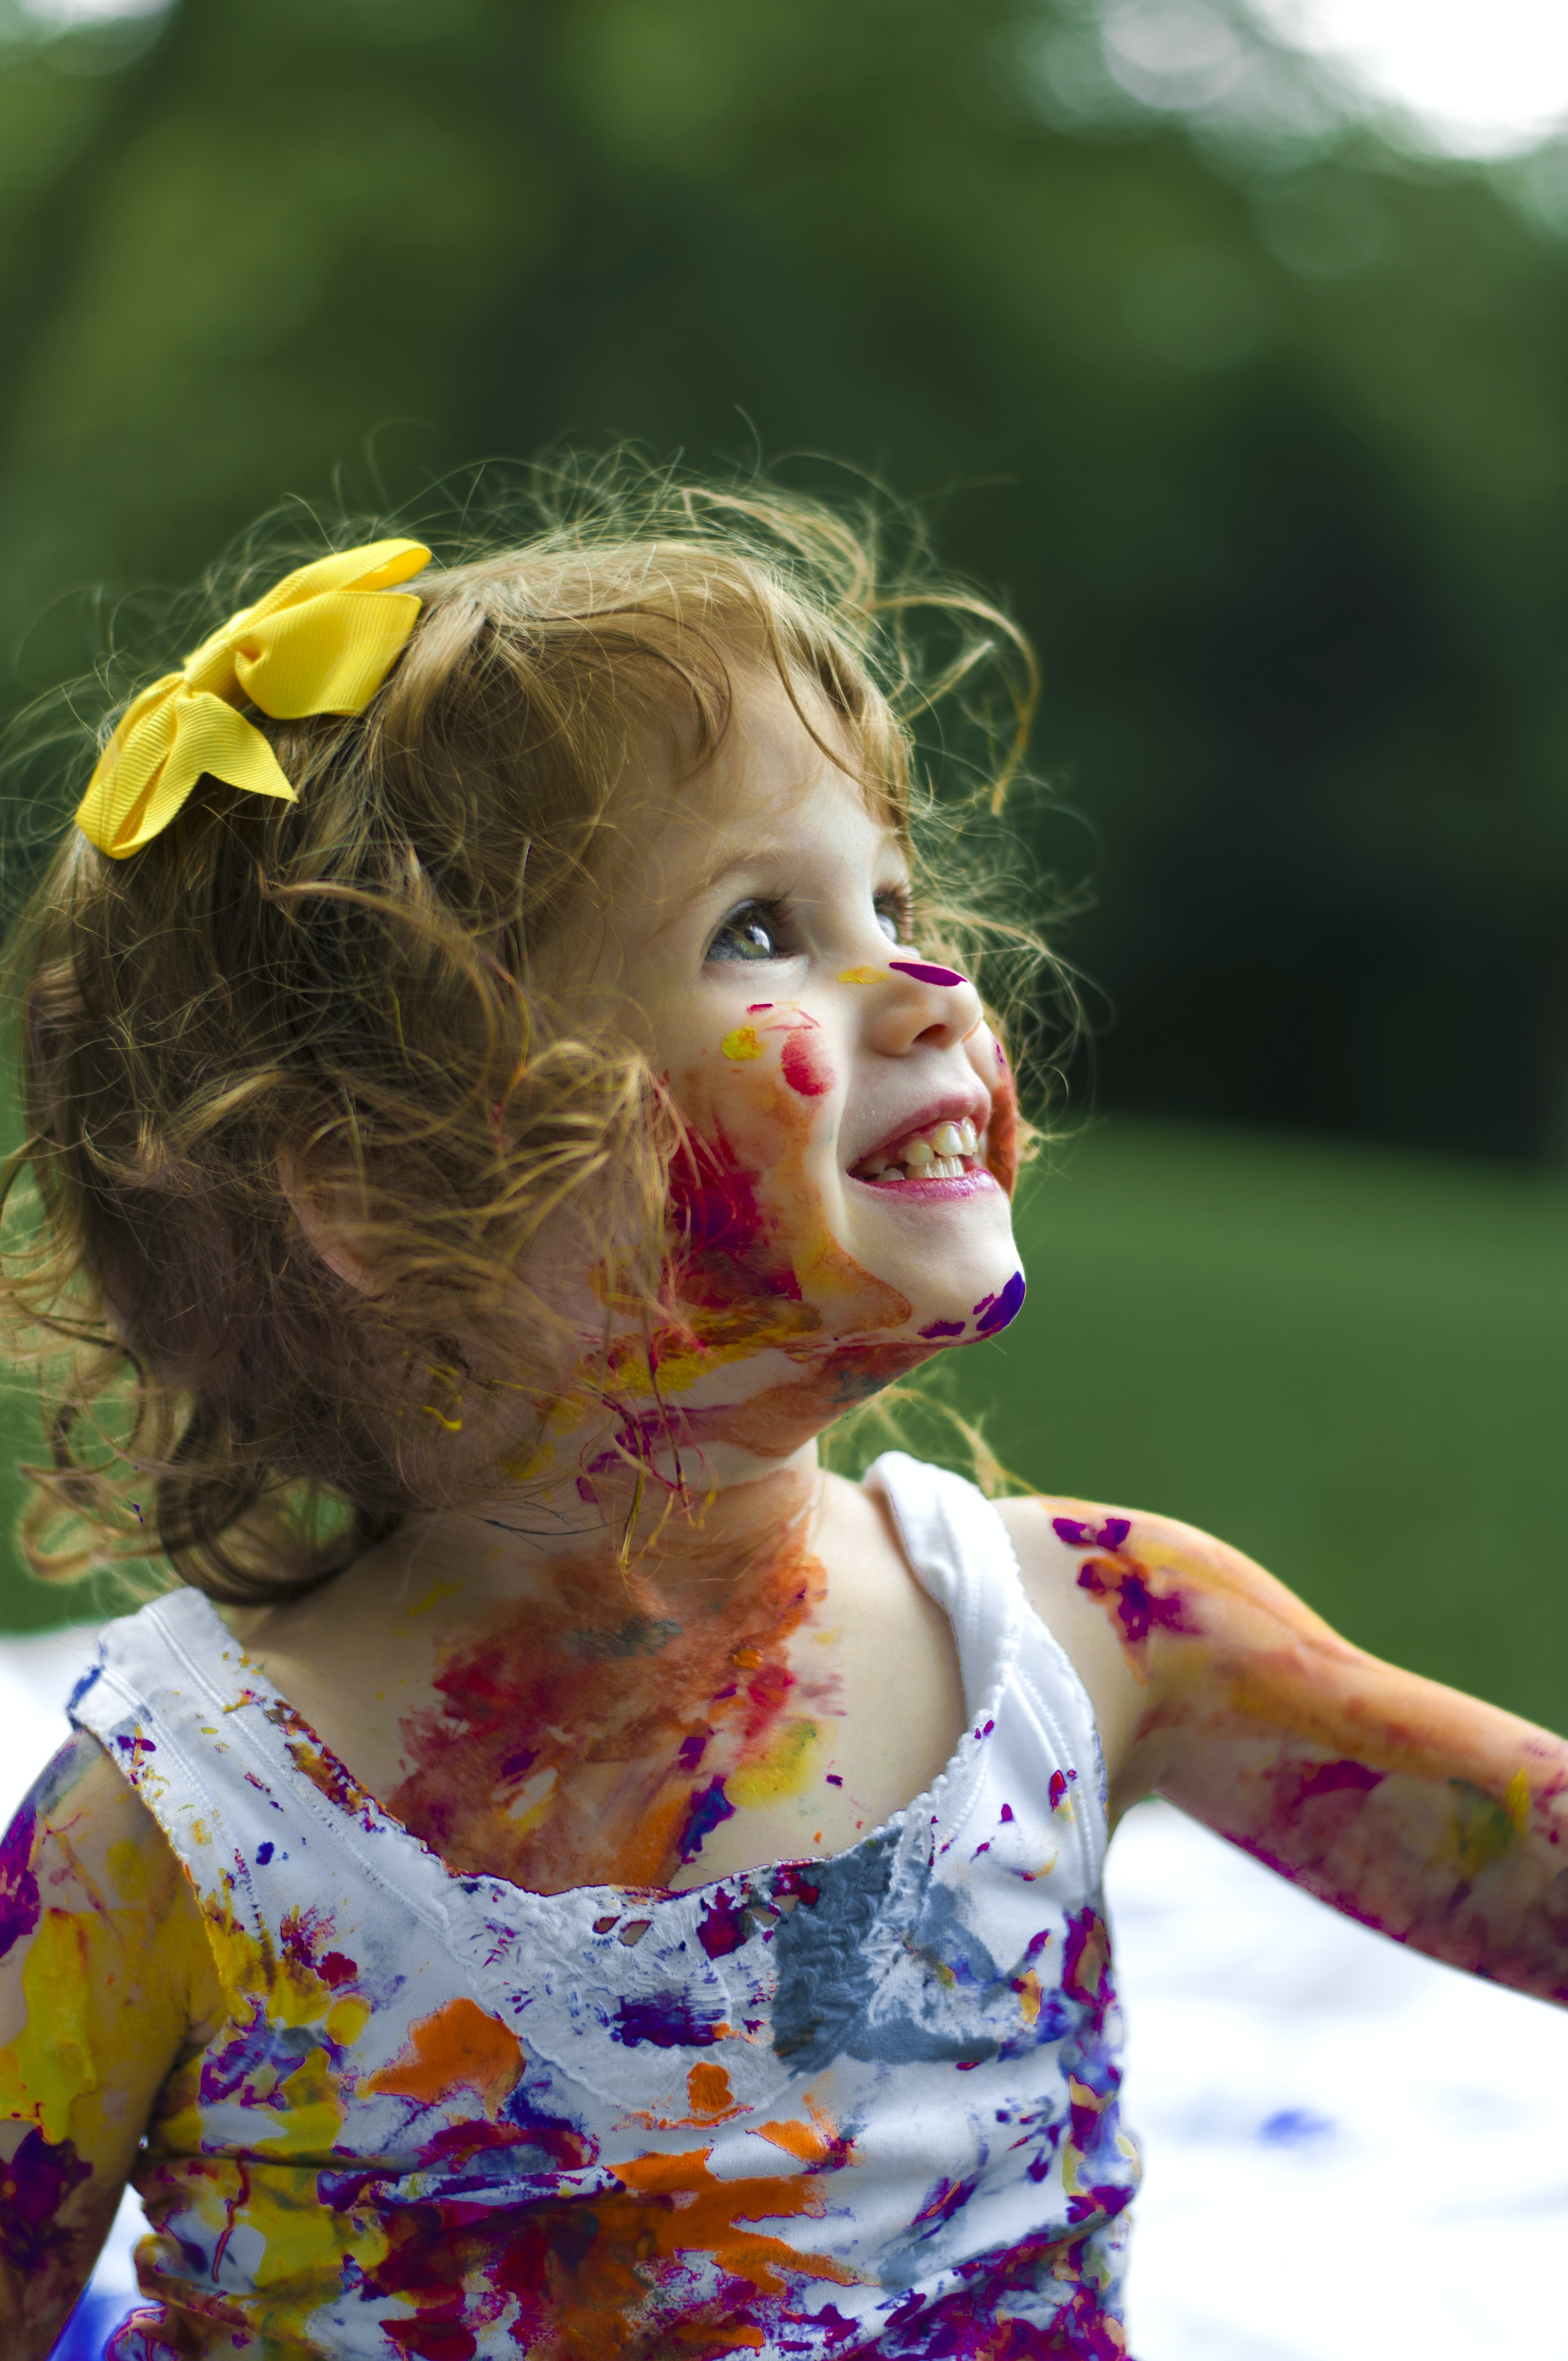 children pictures [hq] download free images on unsplashgirl with paint of body